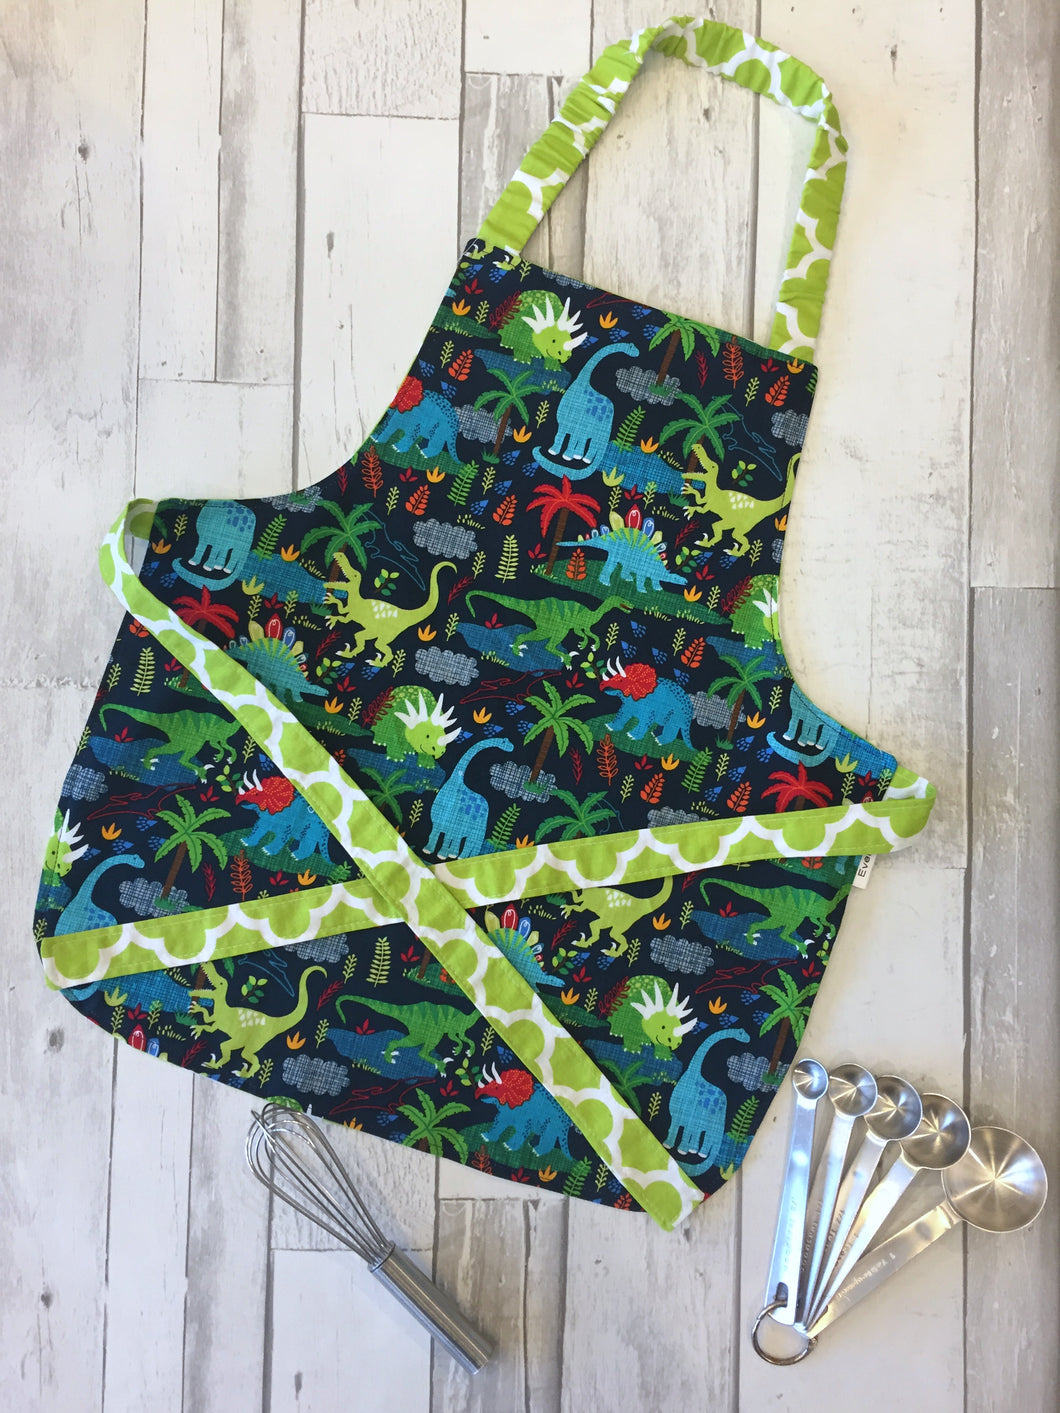 CUSTOM ORDER - Toddler Apron